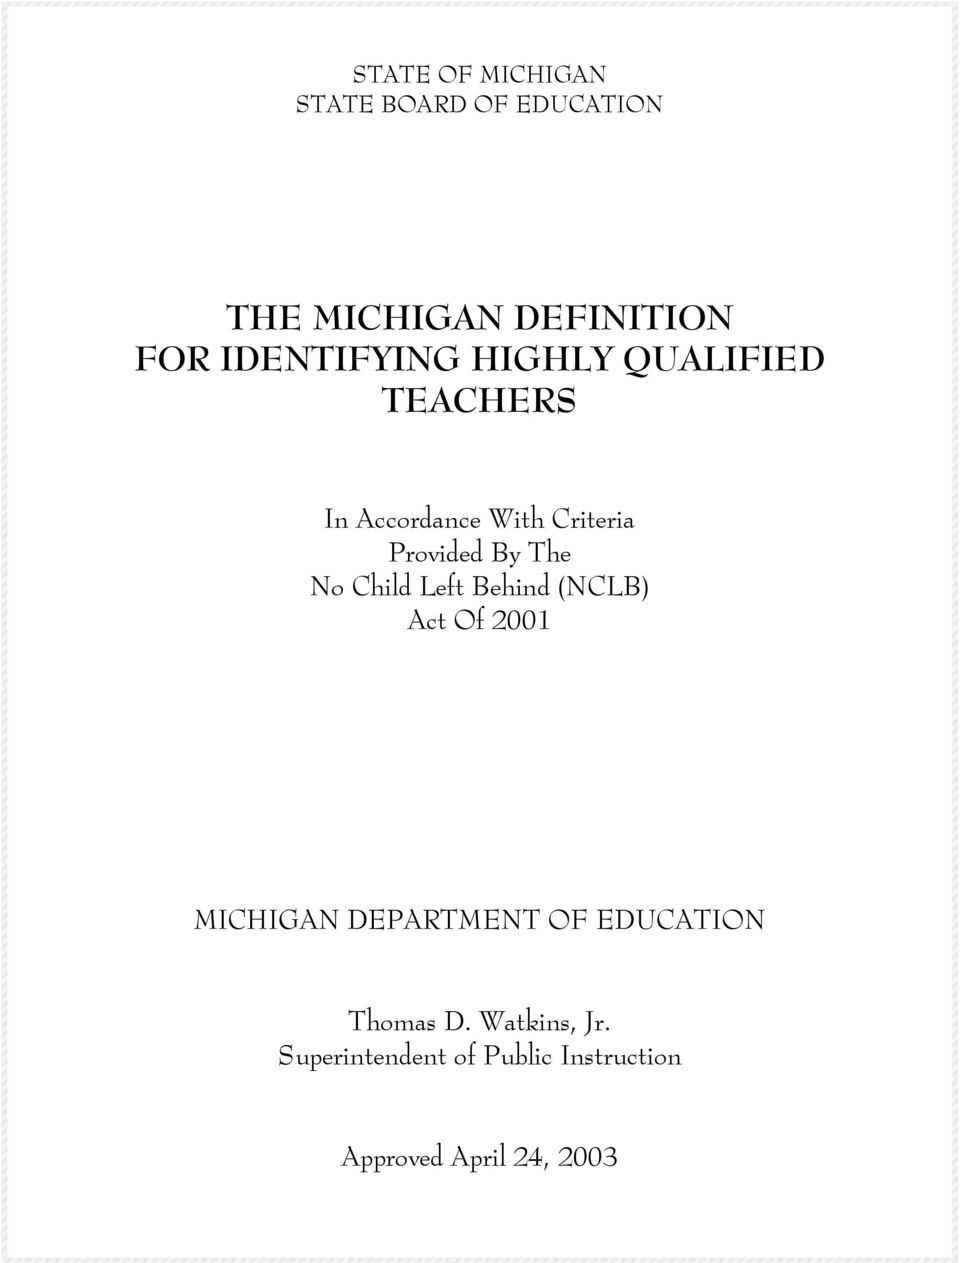 The No Child Left Behind (NCLB) Act Of 2001 MICHIGAN DEPARTMENT OF EDUCATION